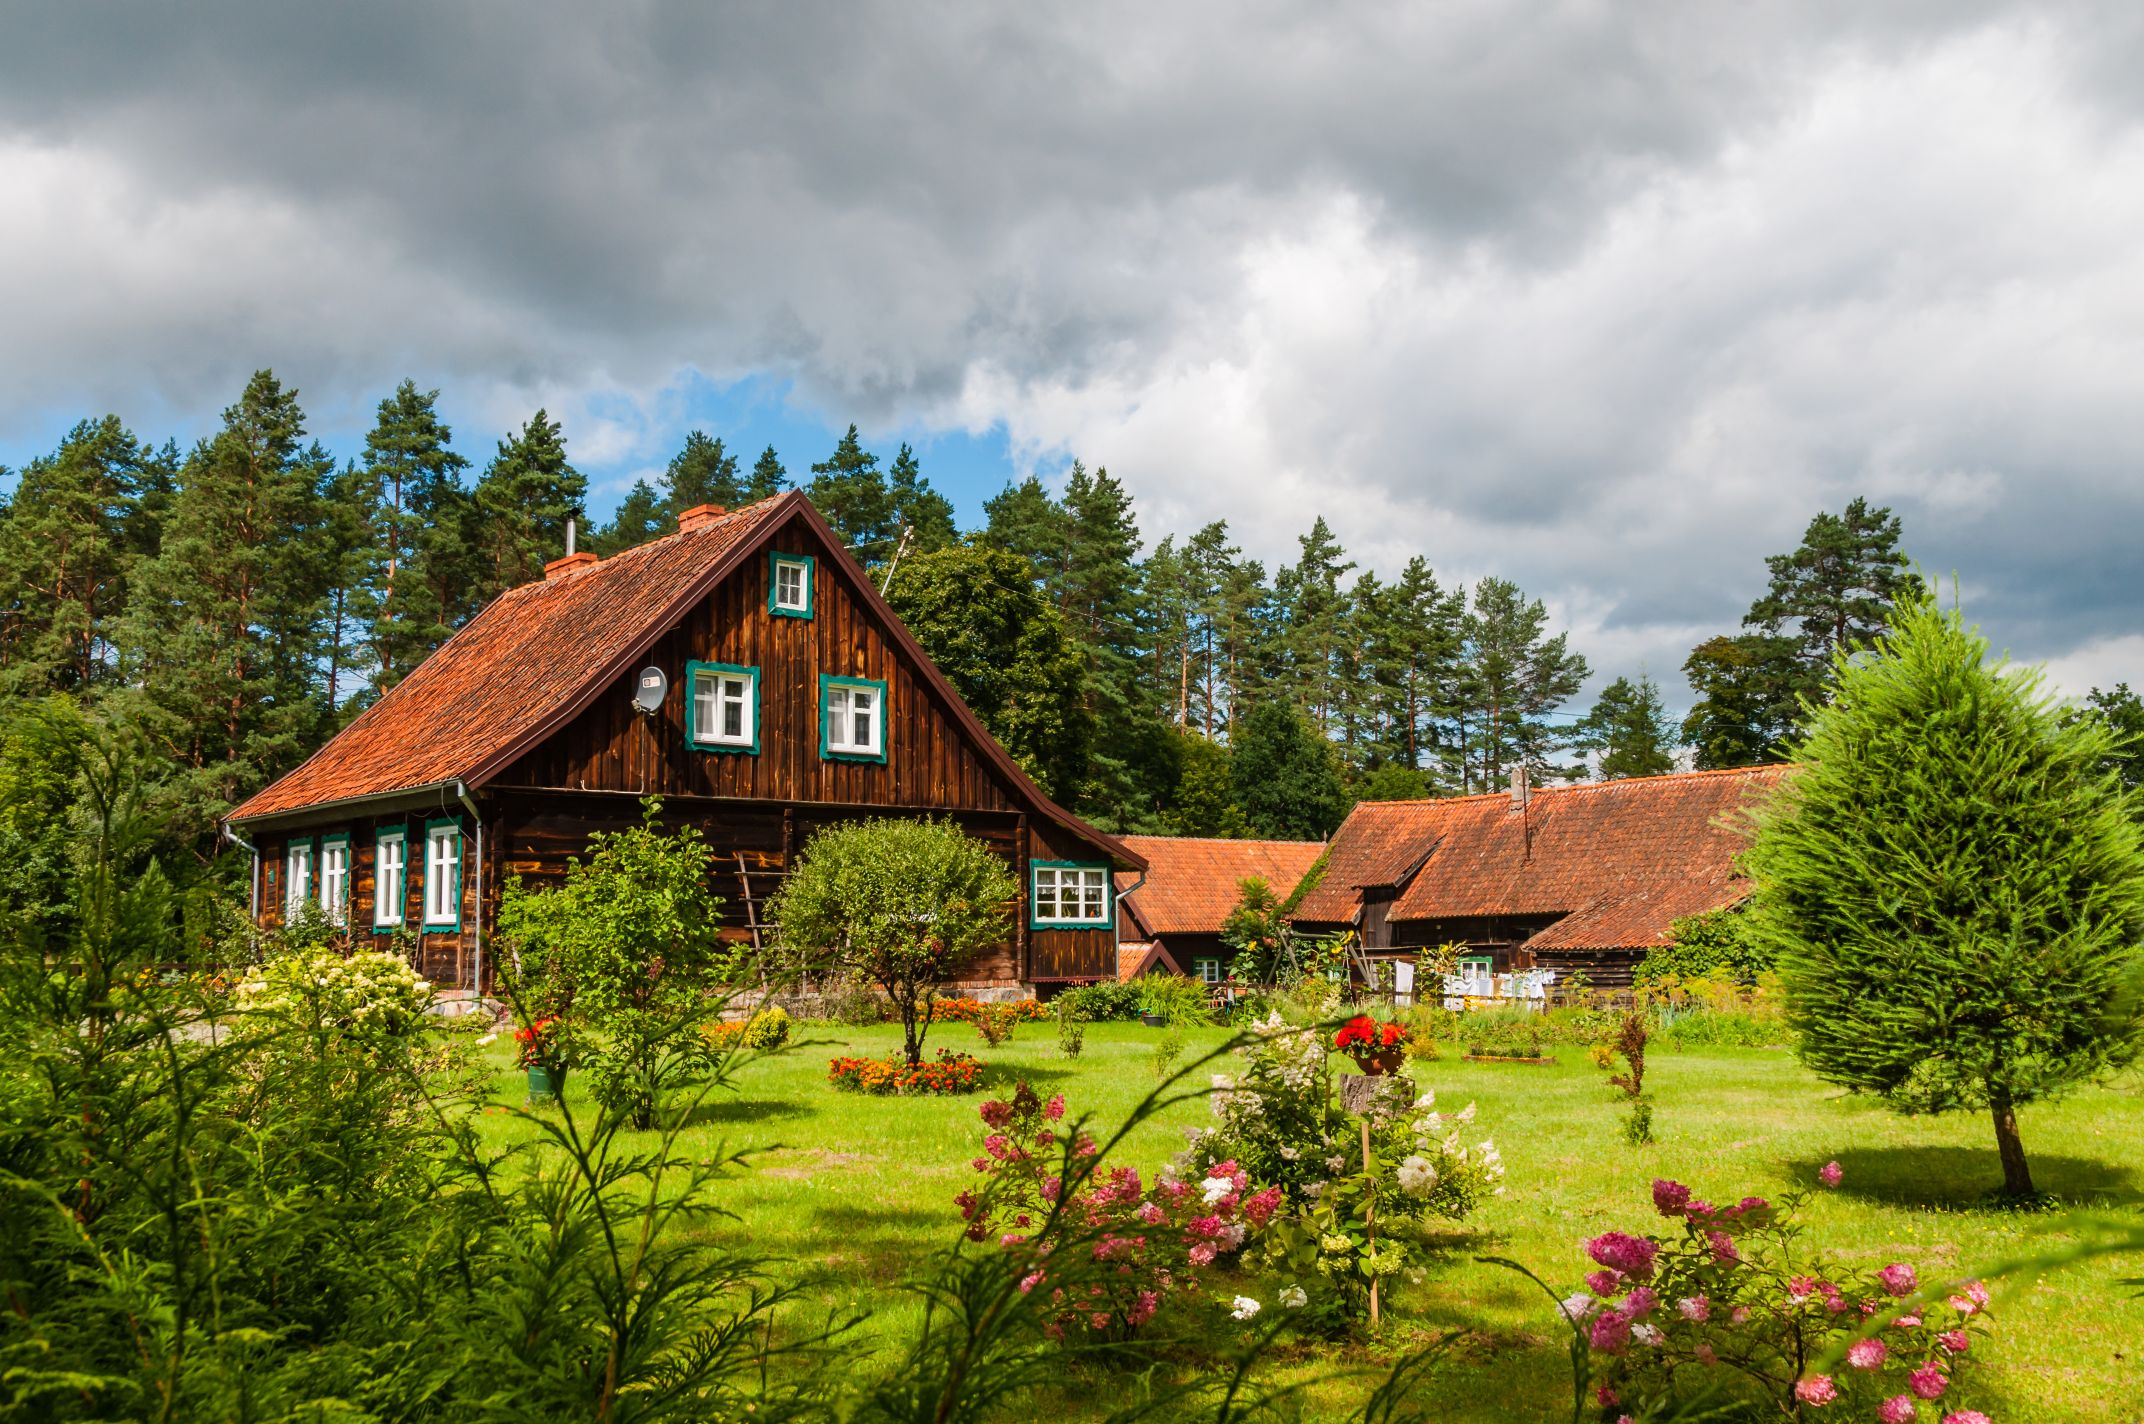 Renting a Farm House Is a Great Alternative to Urban Life